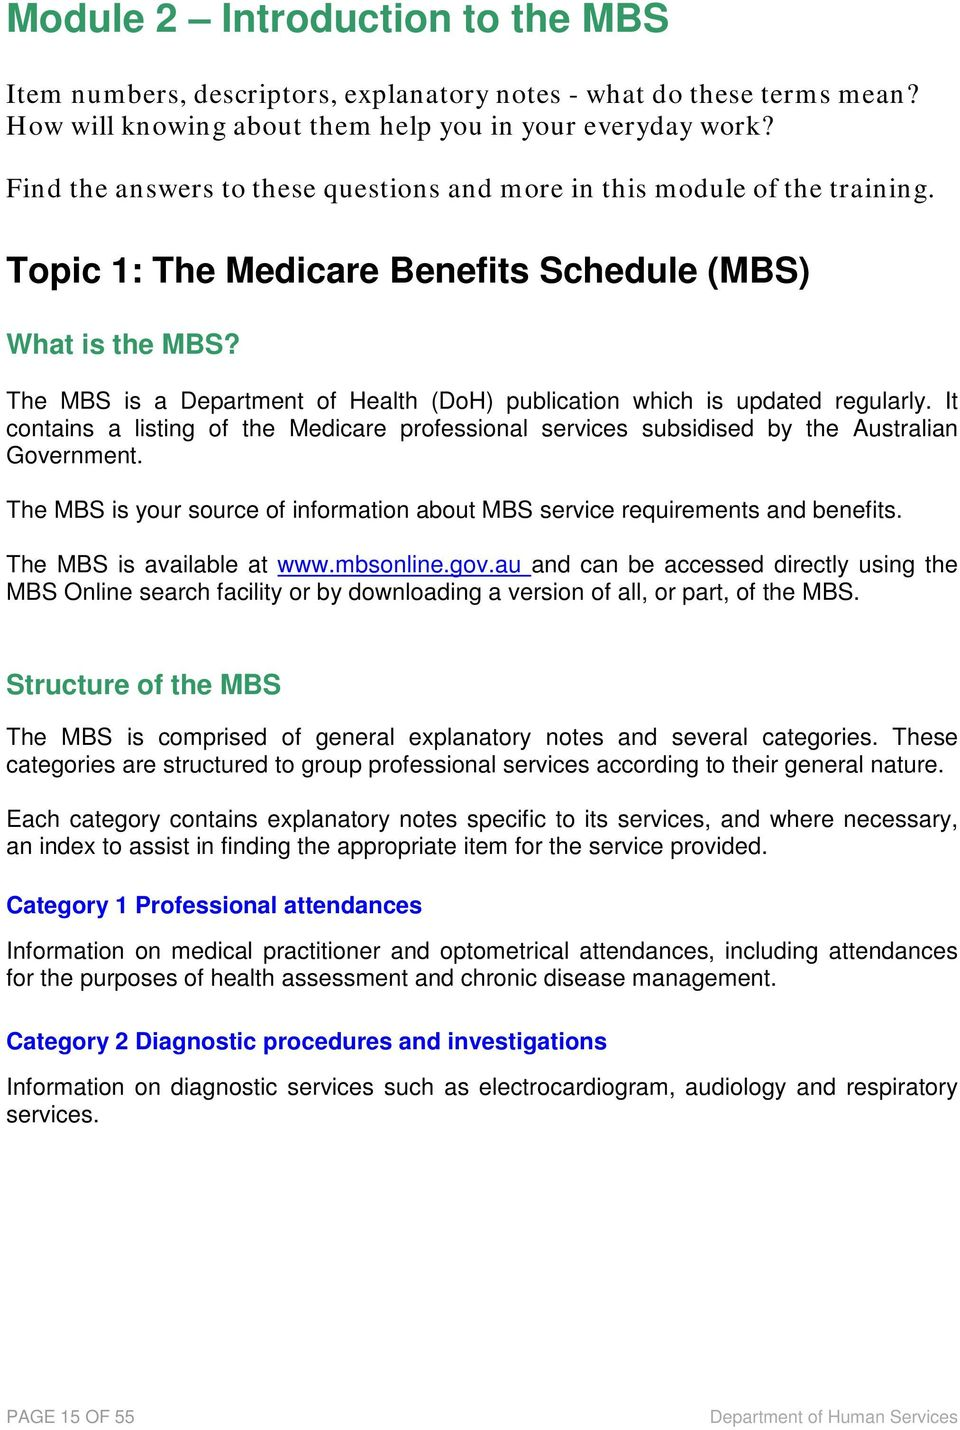 Introduction to the Medicare The MBS is a Department of Health (DoH) publication which is updated regularly.